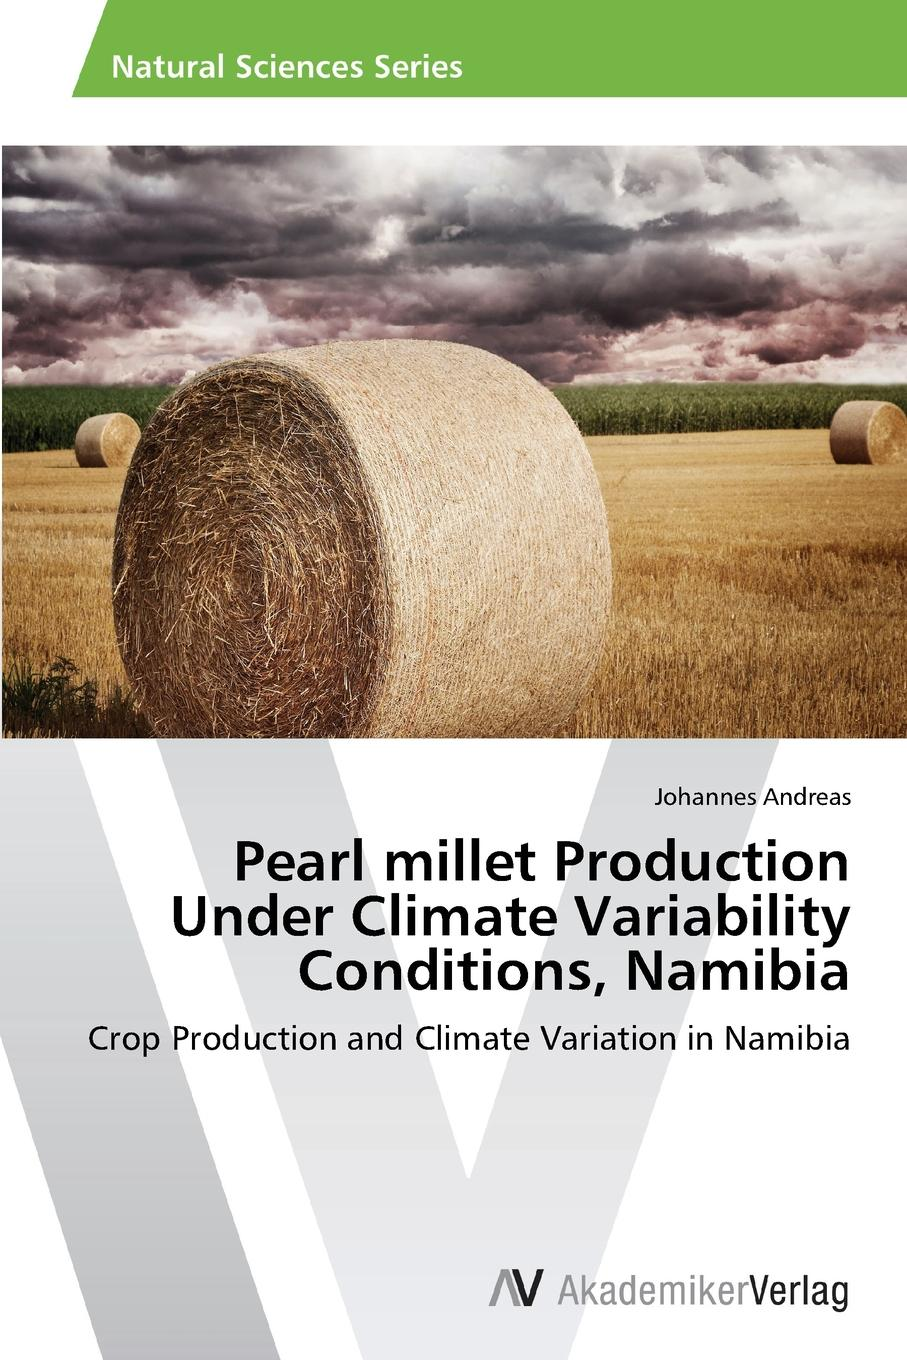 Andreas Johannes Pearl millet Production Under Climate Variability Conditions, Namibia diriba fufa quality analysis of farmers chickpea seed sources in ethiopia